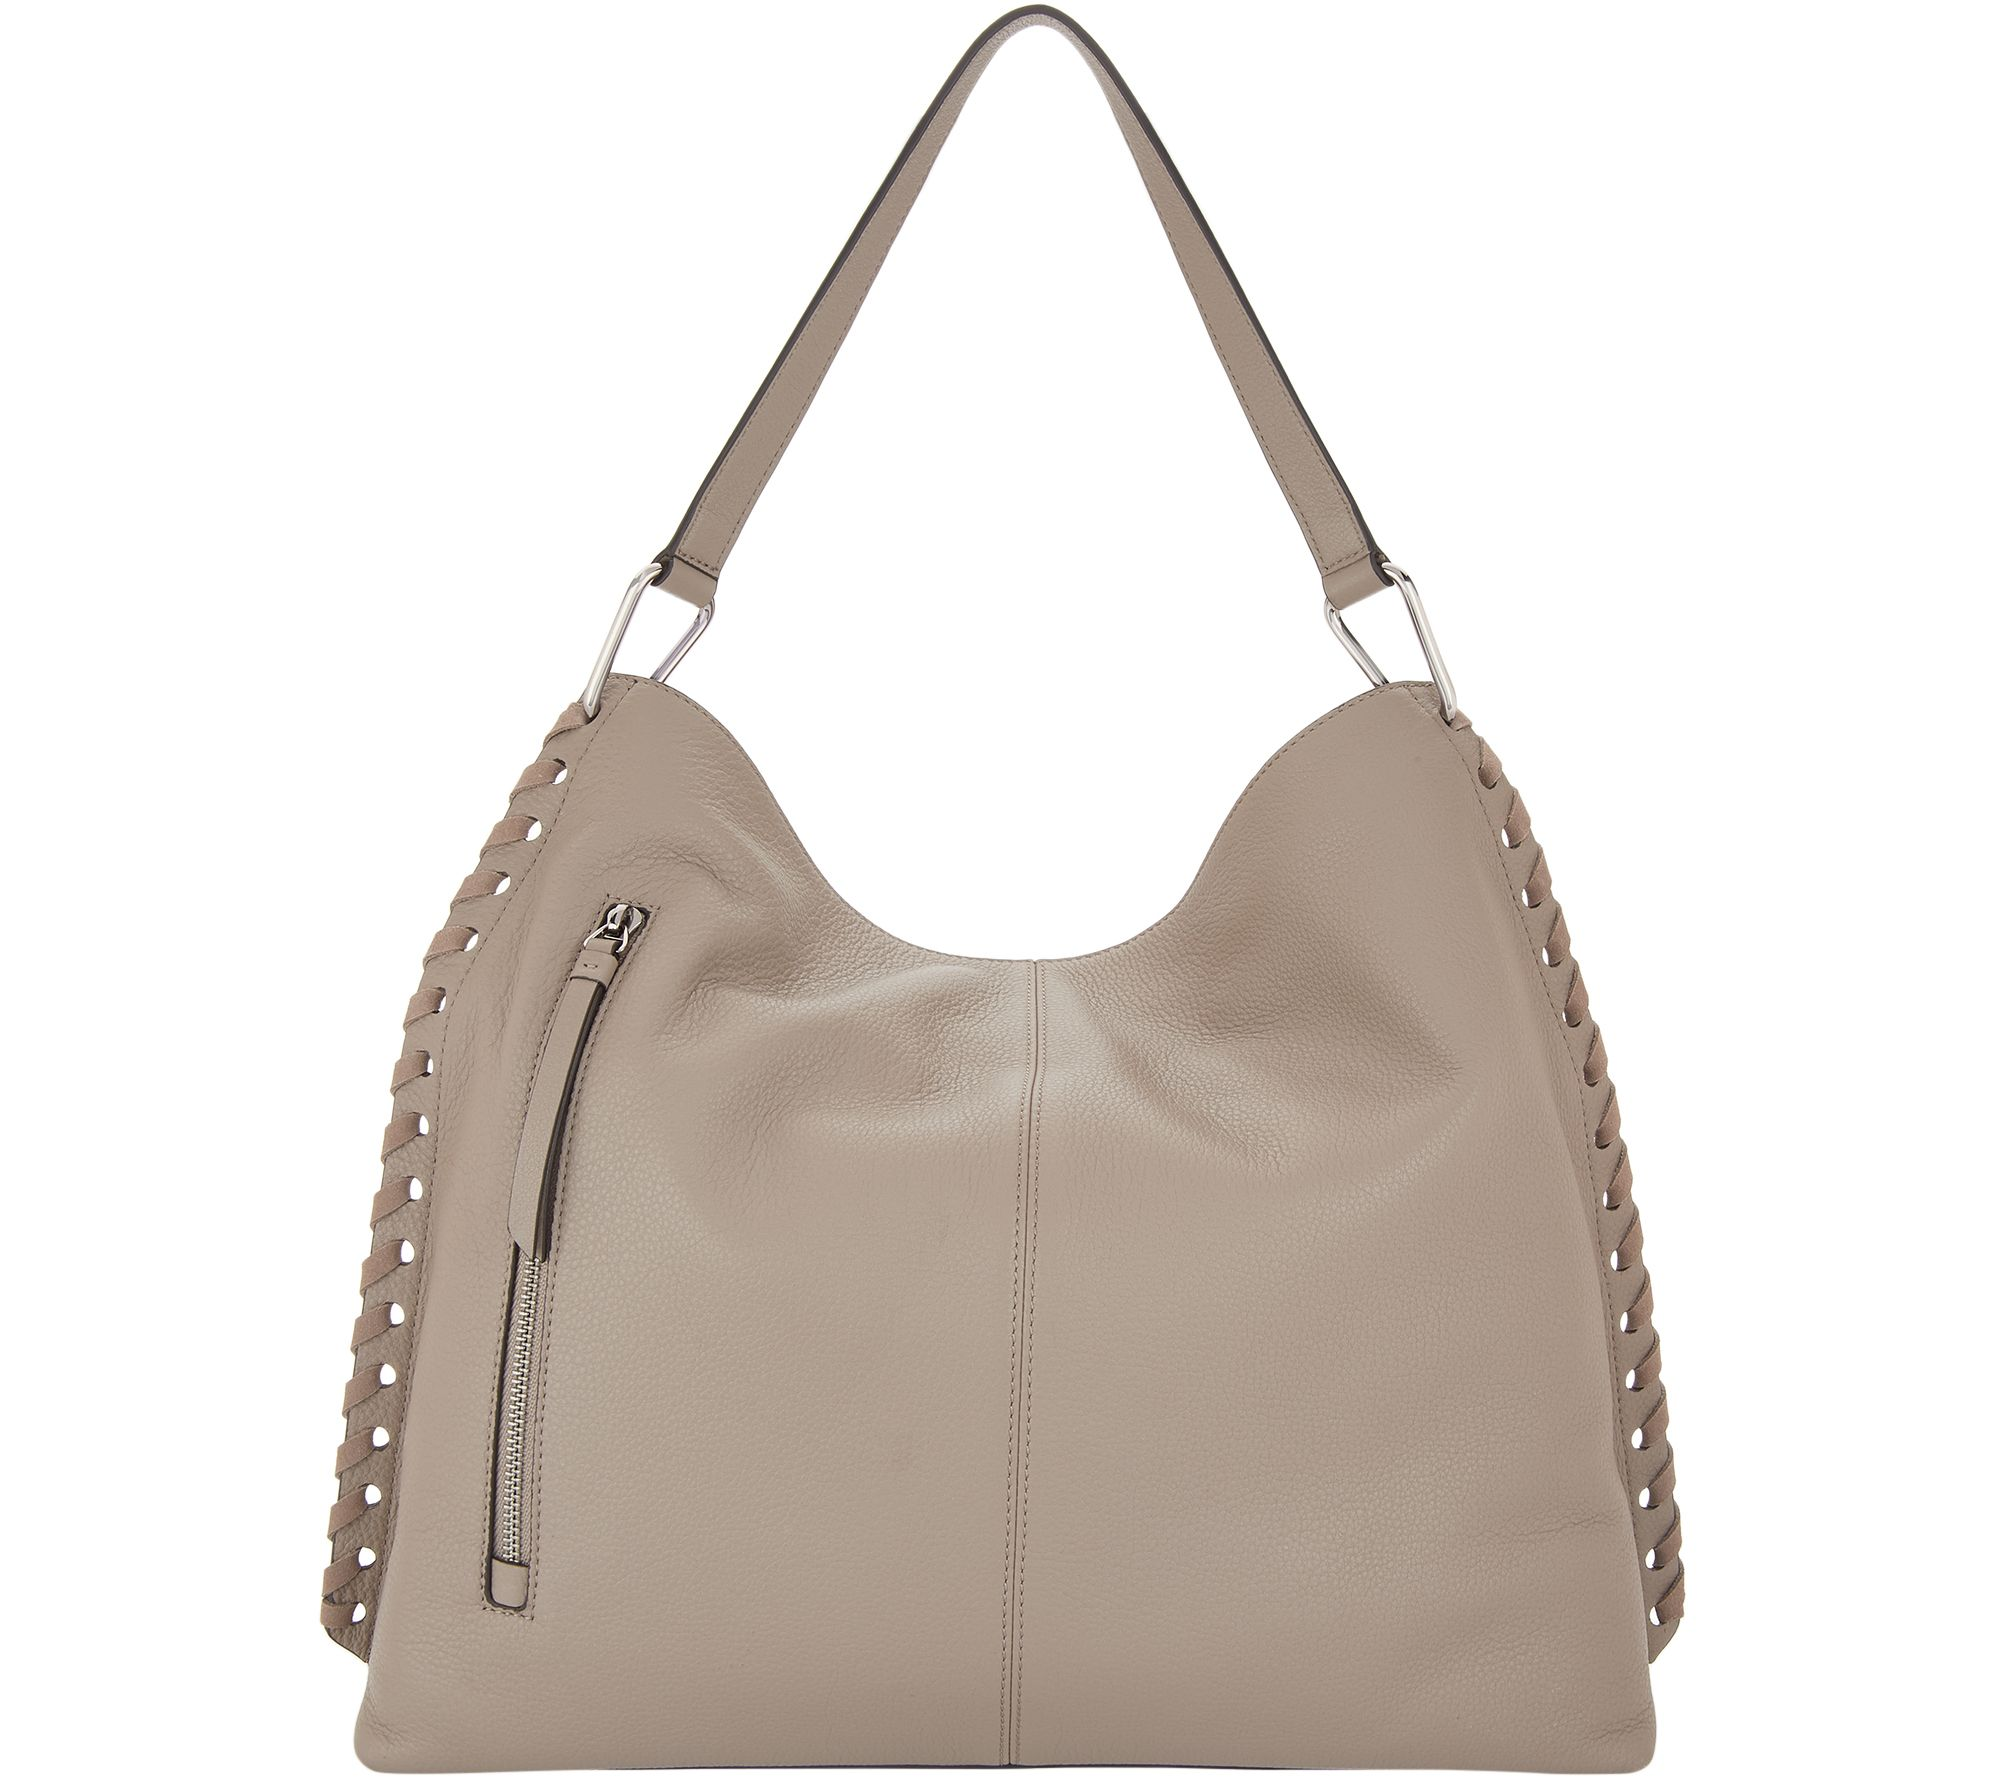 cc1ab30a57 Vince Camuto Suede Hobo Bag - Bren - Page 1 — QVC.com